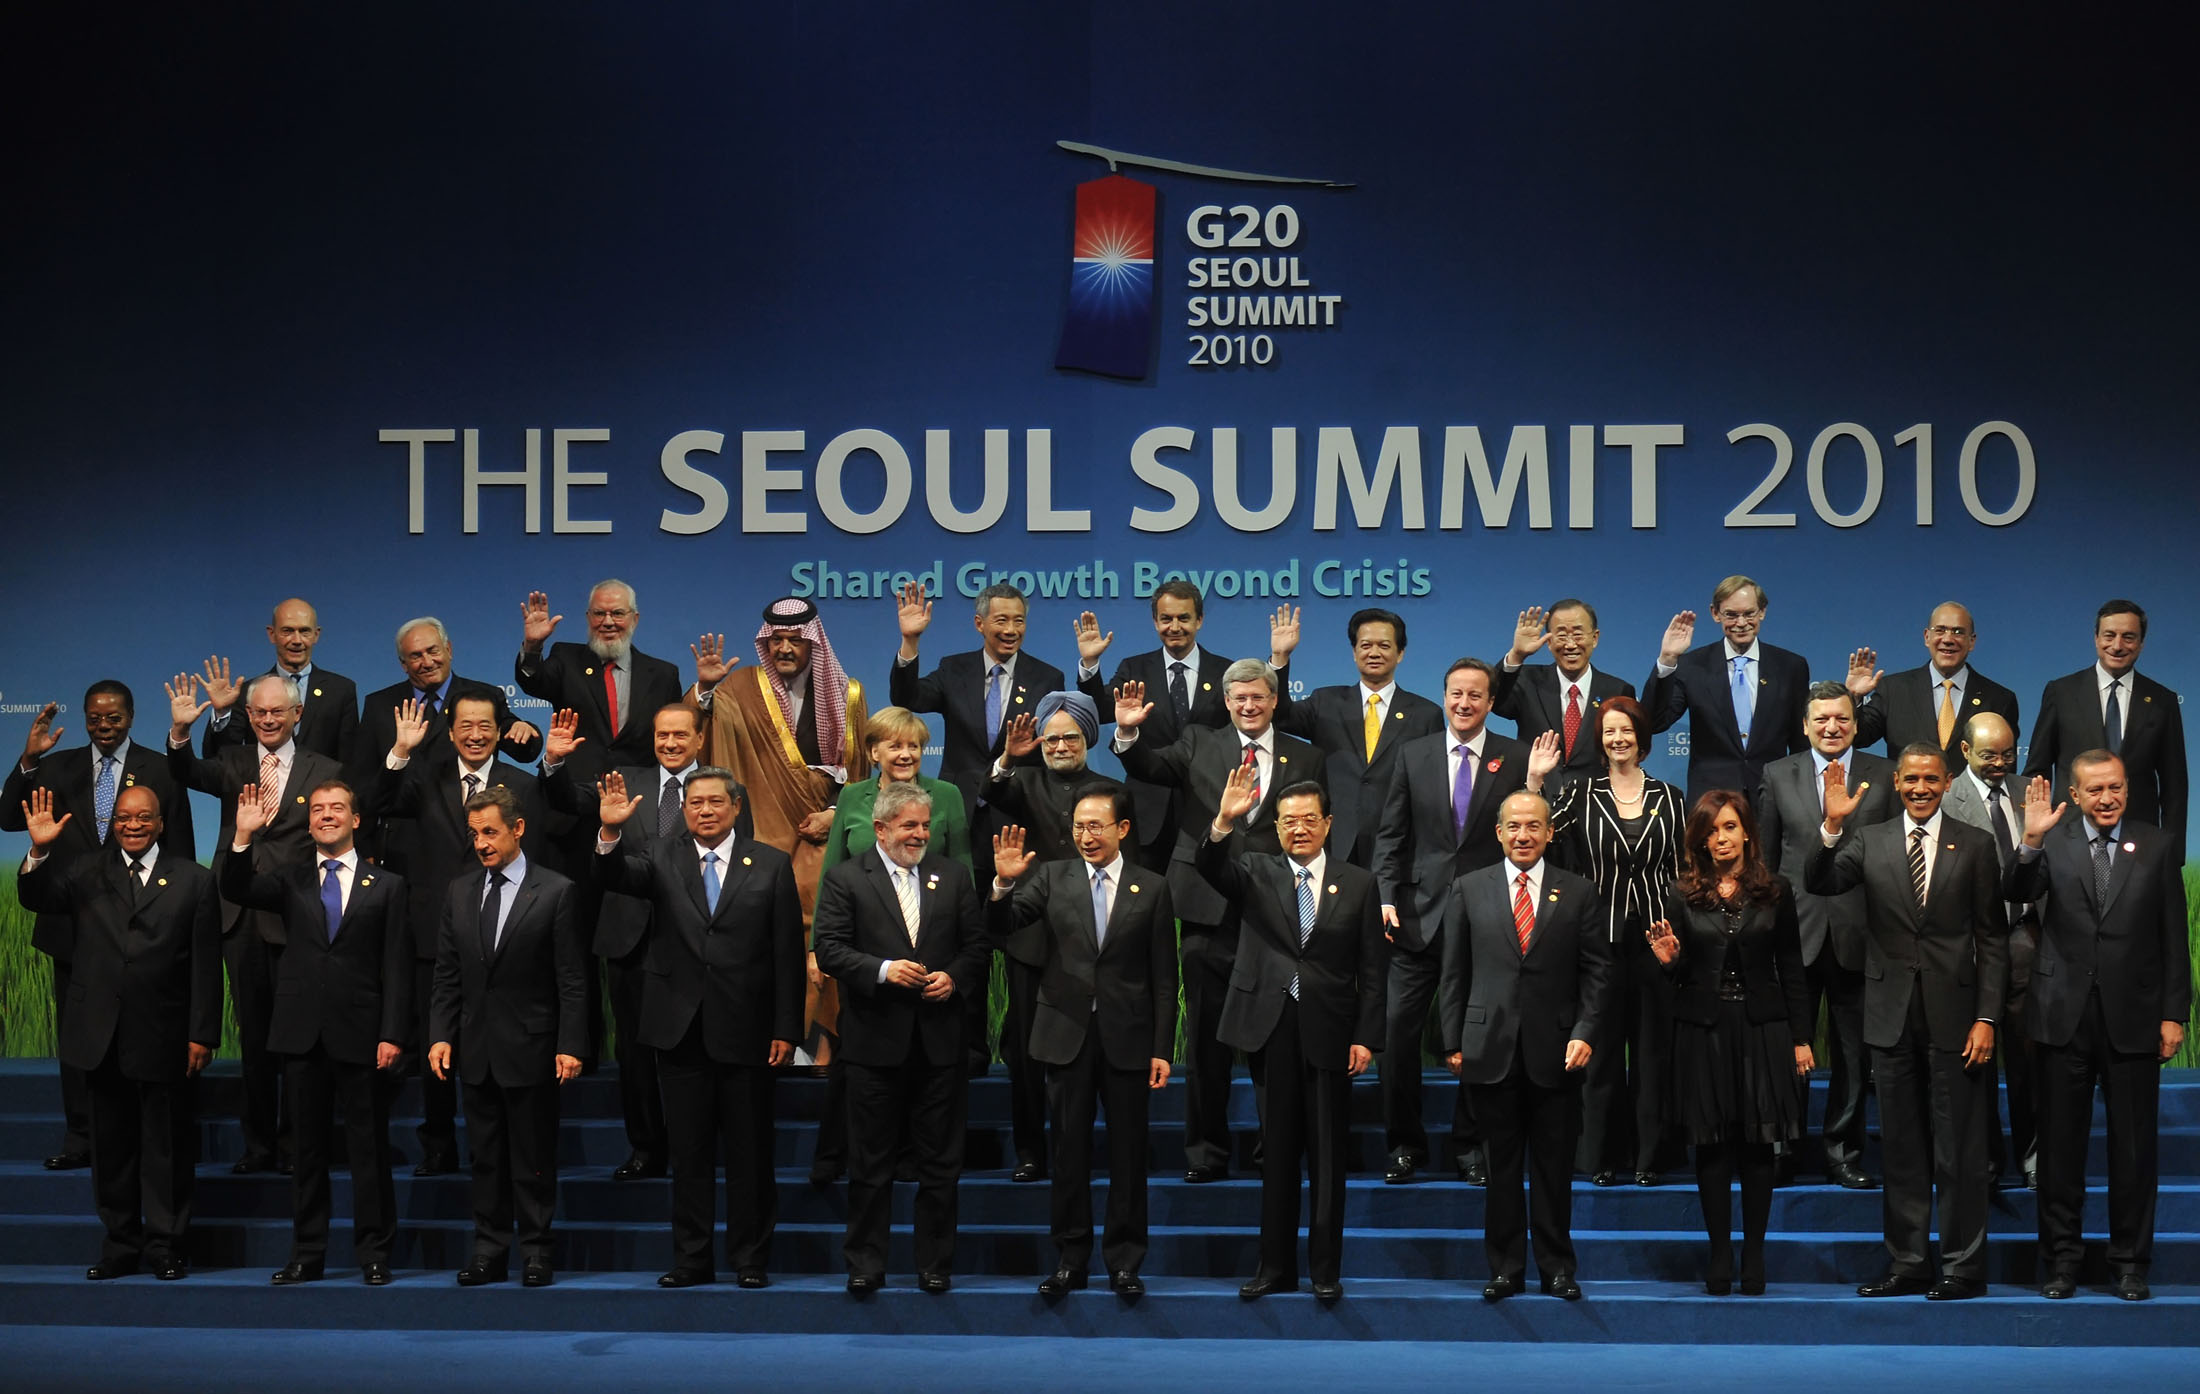 http://upload.wikimedia.org/wikipedia/commons/c/c5/2010_G-20_Seoul_summit.jpg